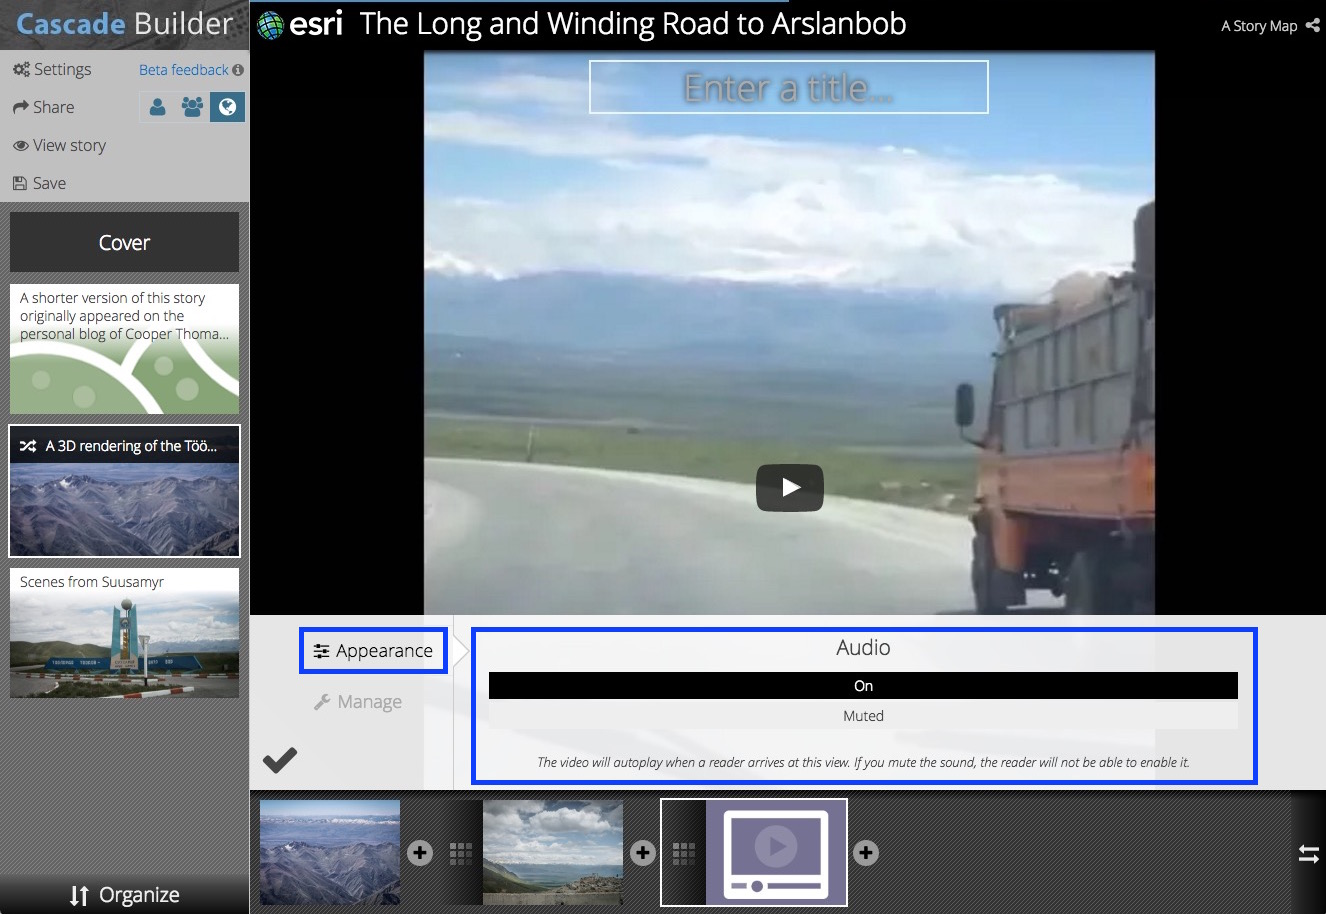 Using The Story Map Cascade Builder Configuring Media Sound Developing System Diagrams As A Useful Road Pro Web For Videos In Immersive Sections You Have Choice If Want Audio Enabled Your Readers Or Not Mute Will Be Able To